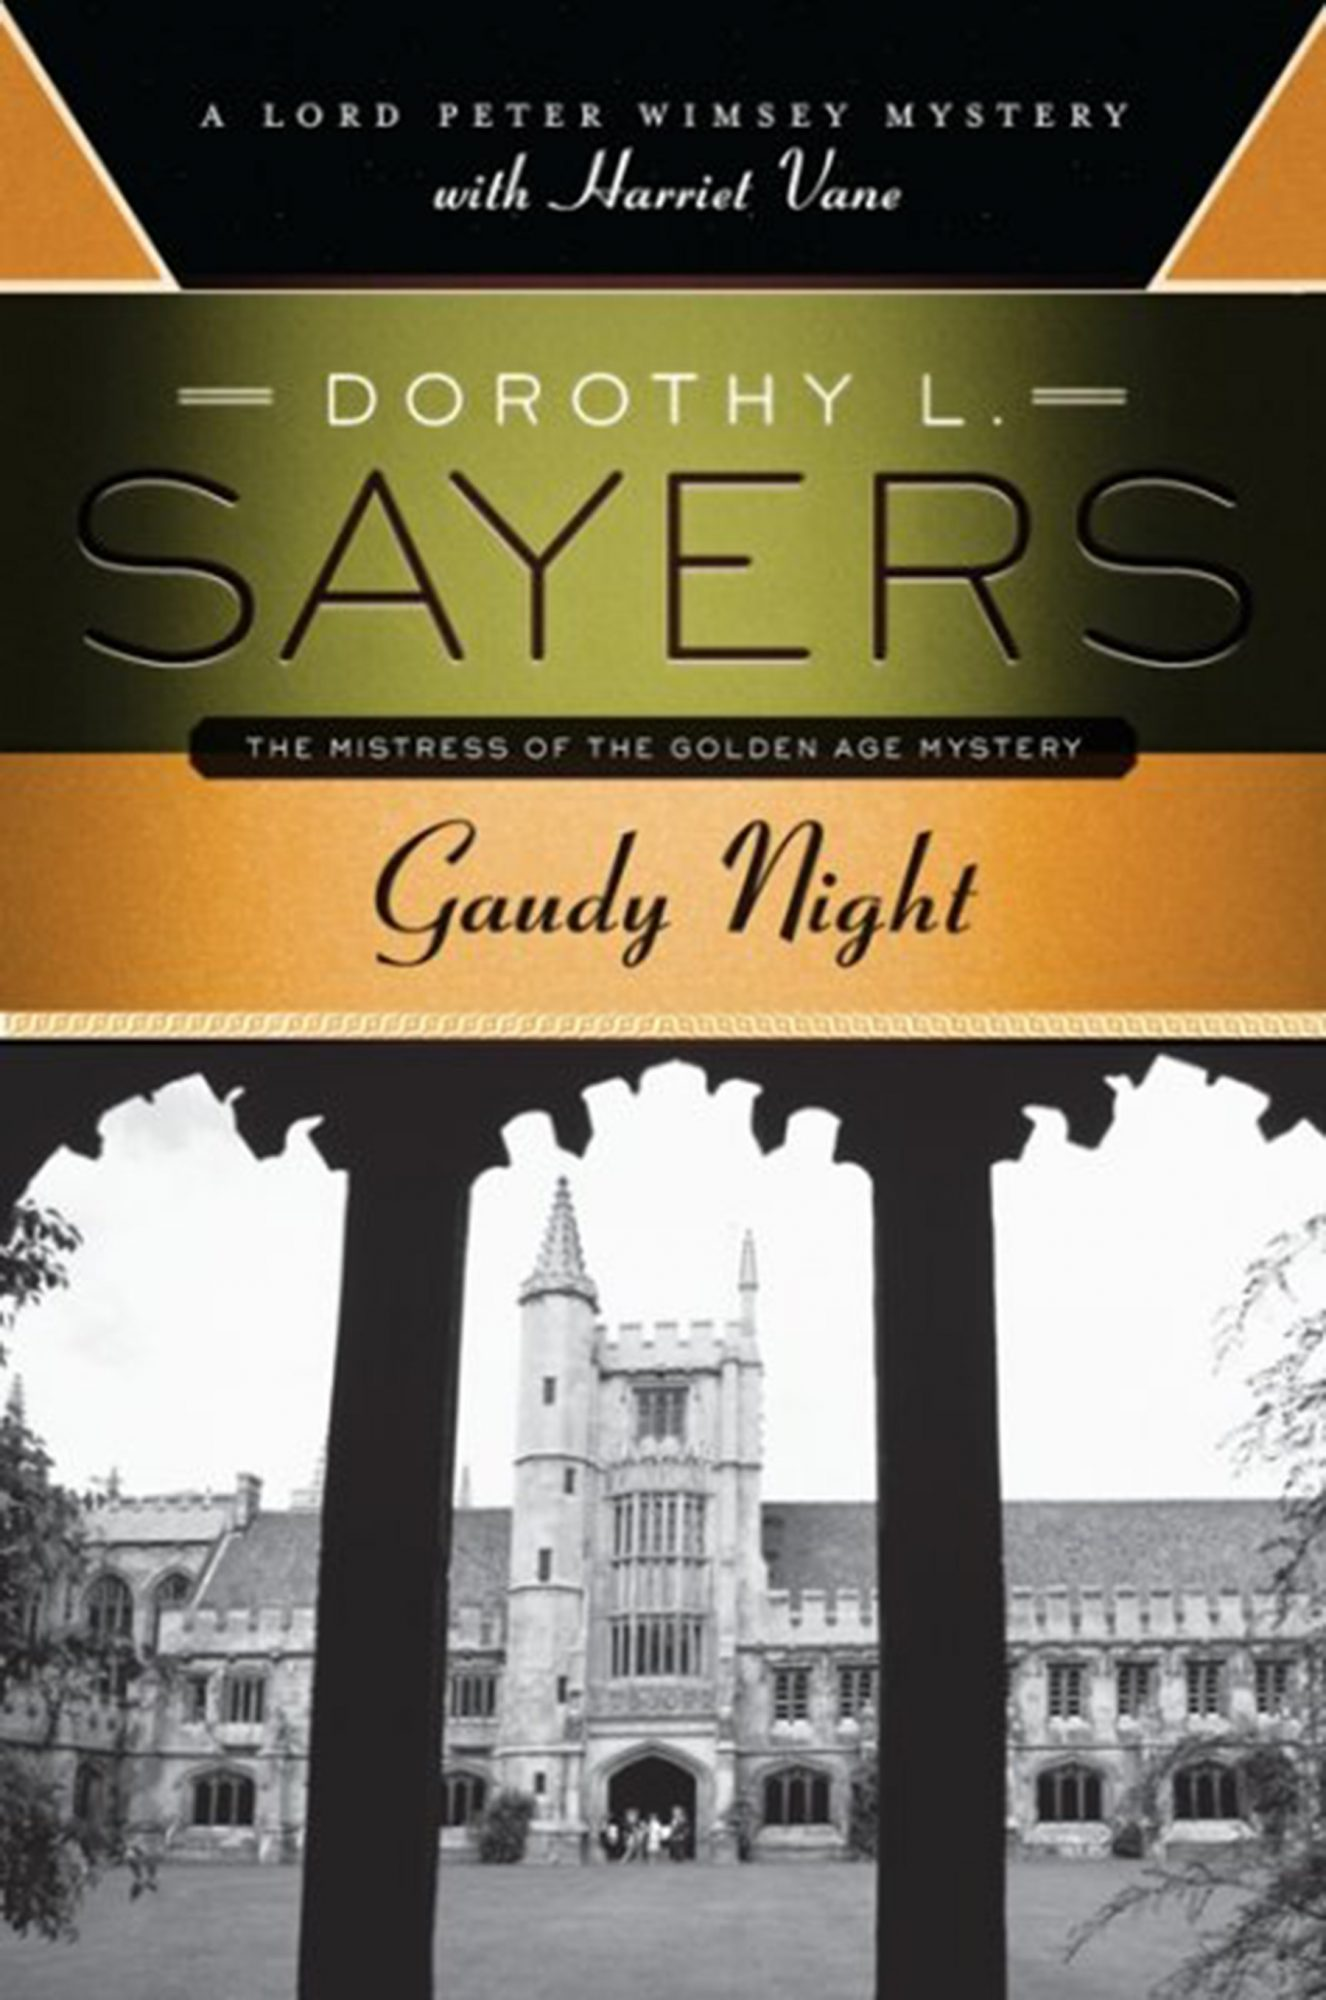 Dorothy L. Sayers, Gaudy Night